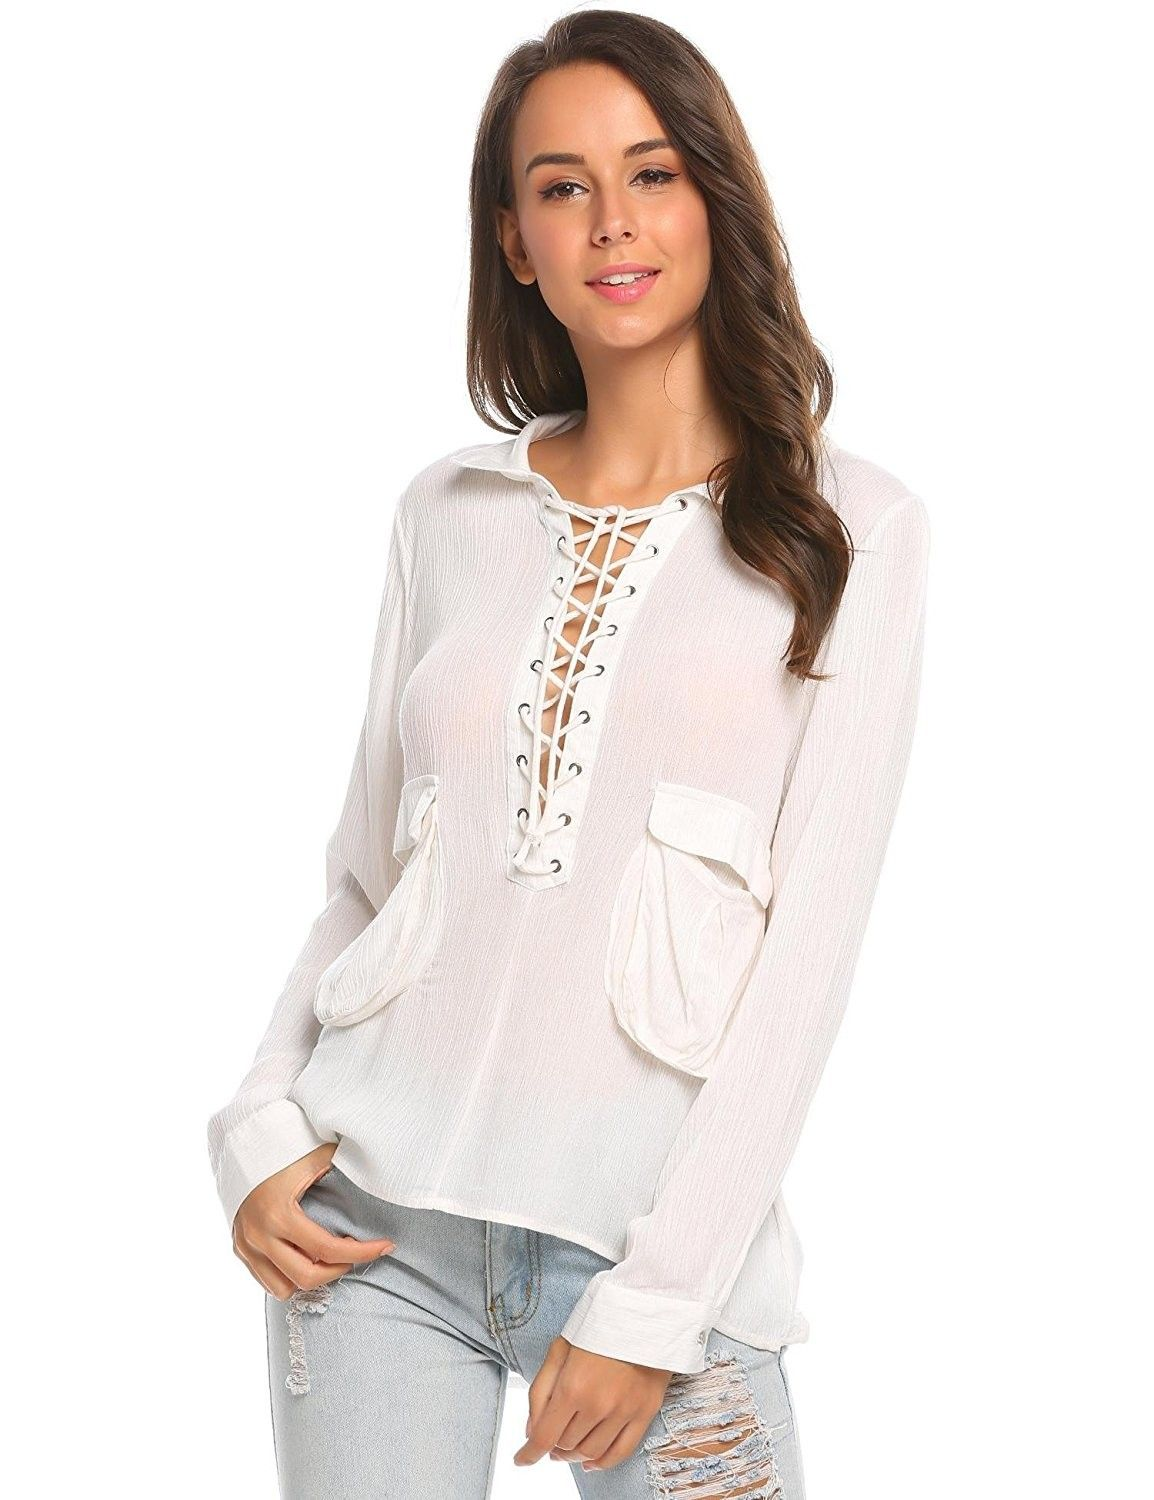 0fb78ae6 Women's Clothing, Tops & Tees, Blouses & Button-Down Shirts, Womens Sexy  Deep V Neck Lace Up Front Long Sleeve Casual Loose T-Shirt Blouse - White  ...